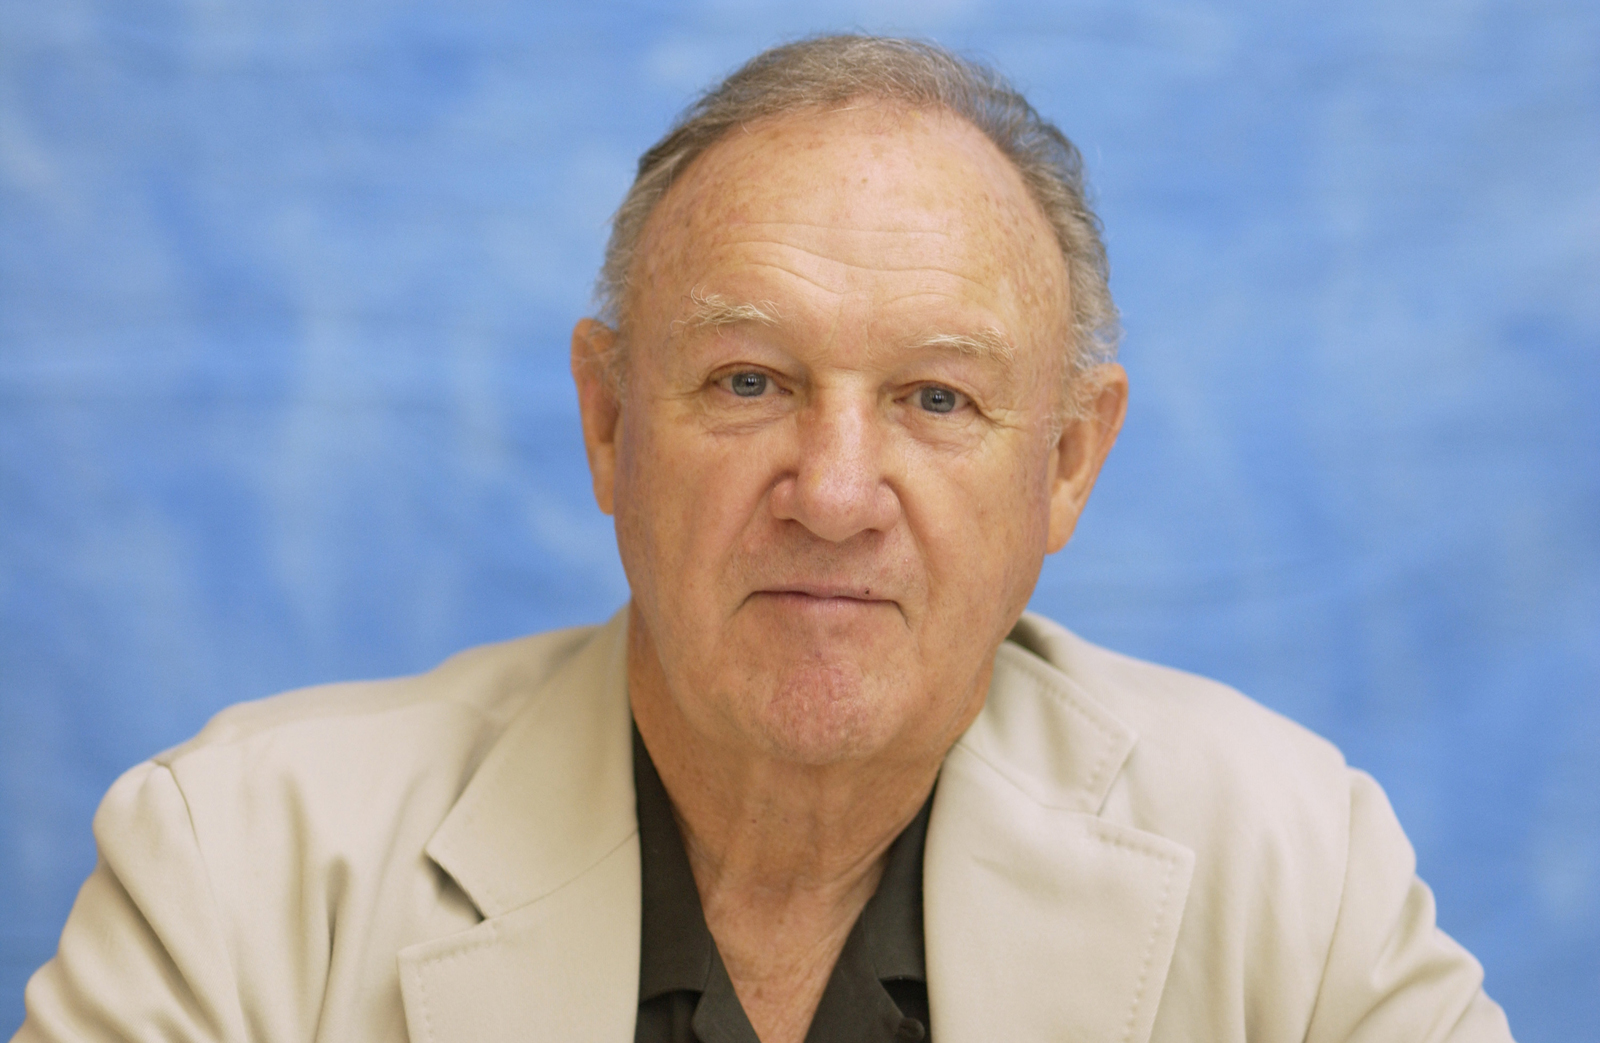 New Amazing Gene Hackman hd wallpaper Wallpaper